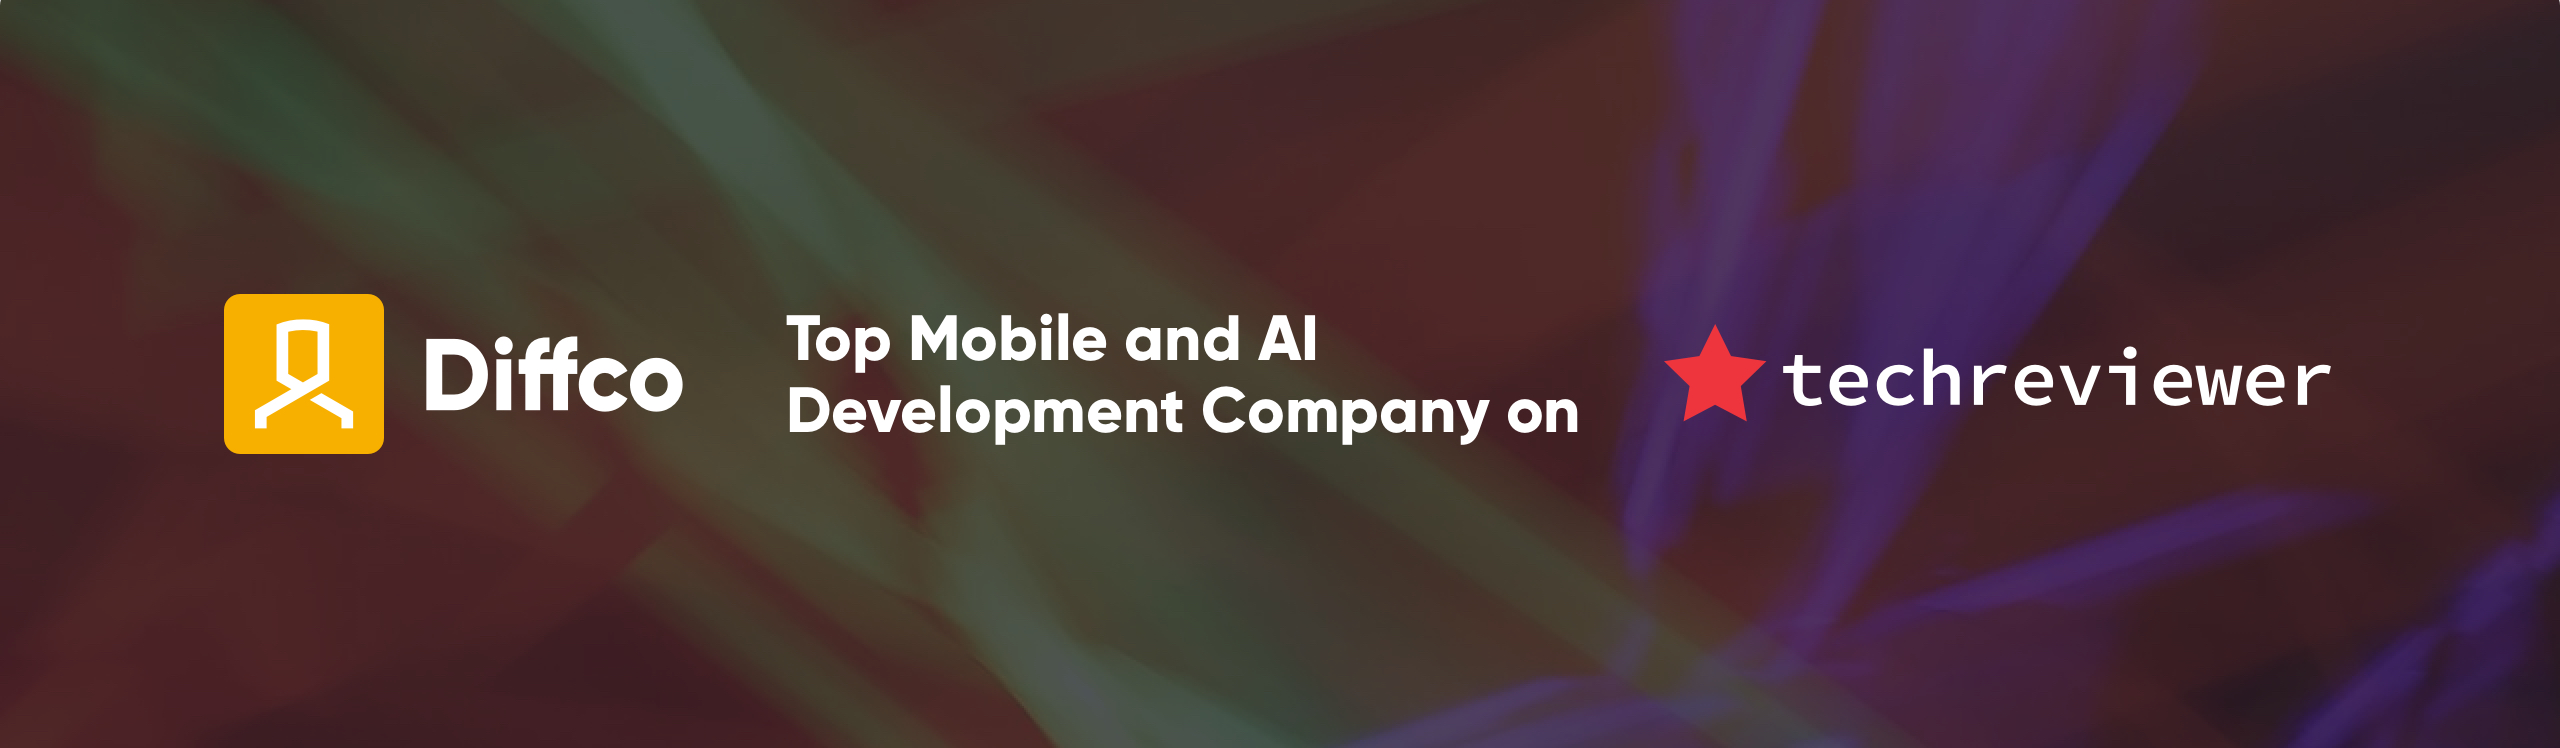 Diffco is recognized by Techreviewer as a Top Mobile and AI Development Company in 2021